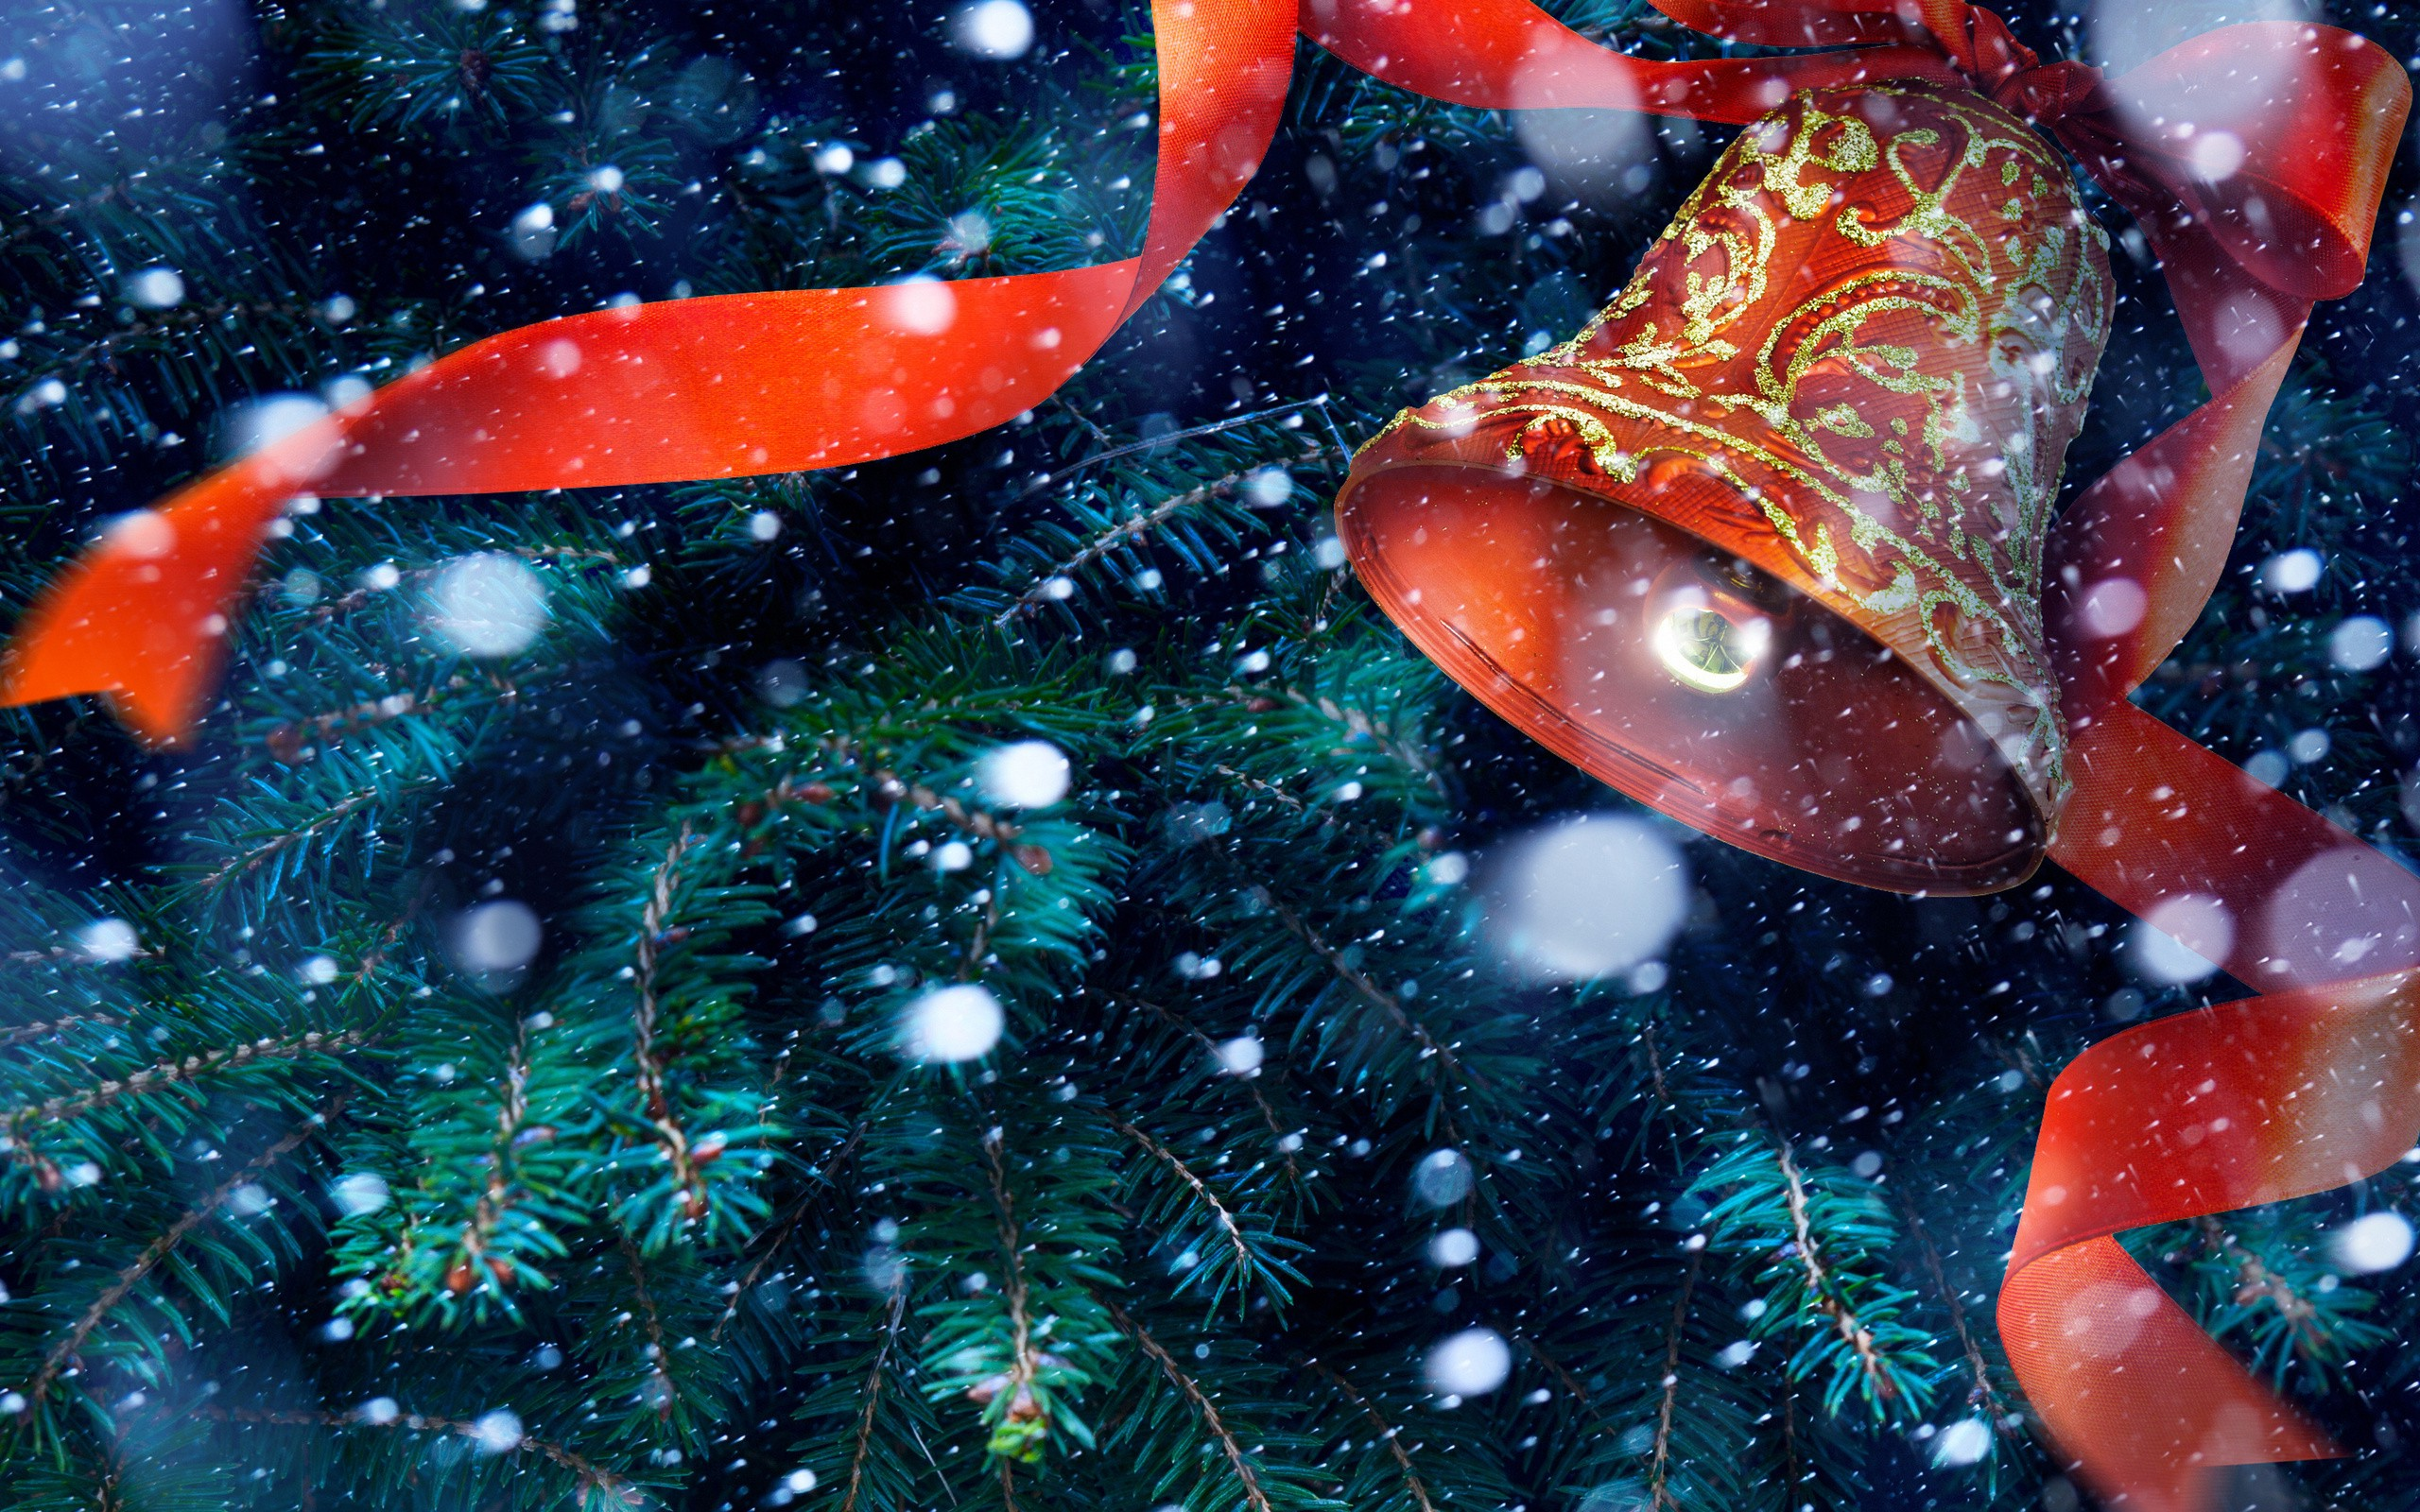 Fall In Love Mobile Wallpaper New Year Bell Ribbon Christmas Tree Snow Wallpapers Hd